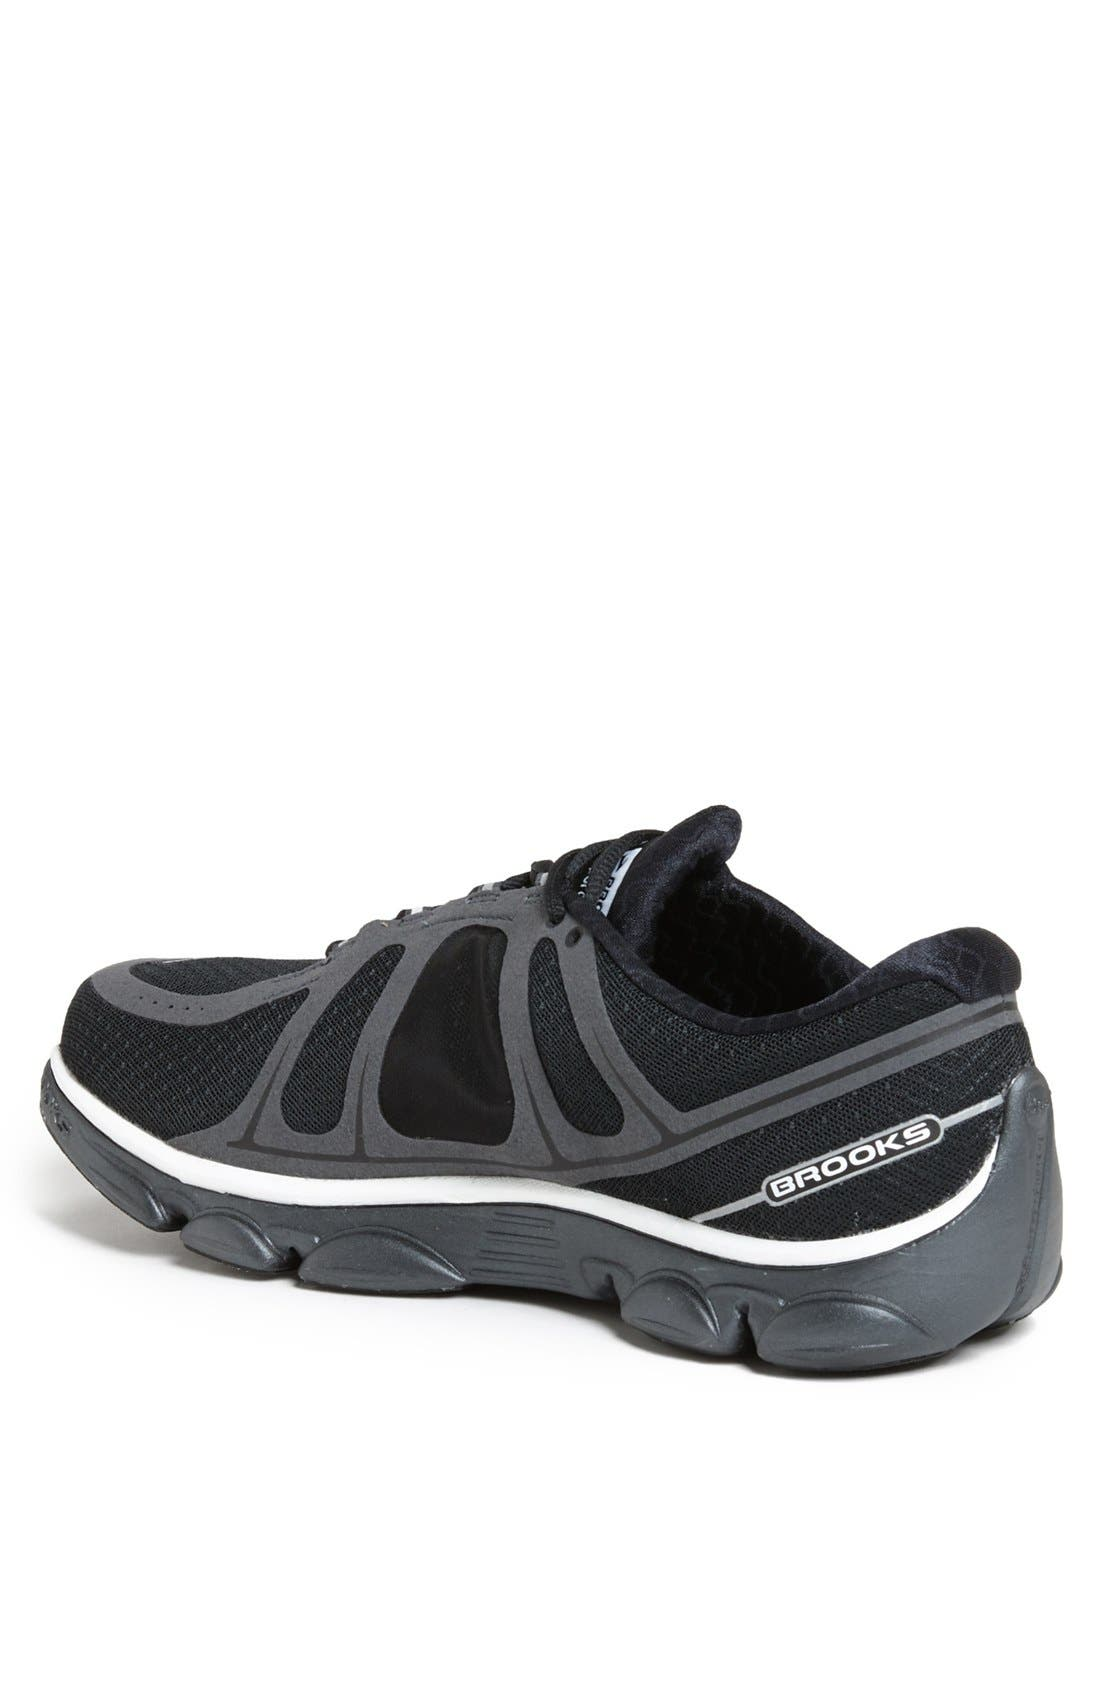 Alternate Image 2  - Brooks 'PureFlow 2' Running Shoe (Men)